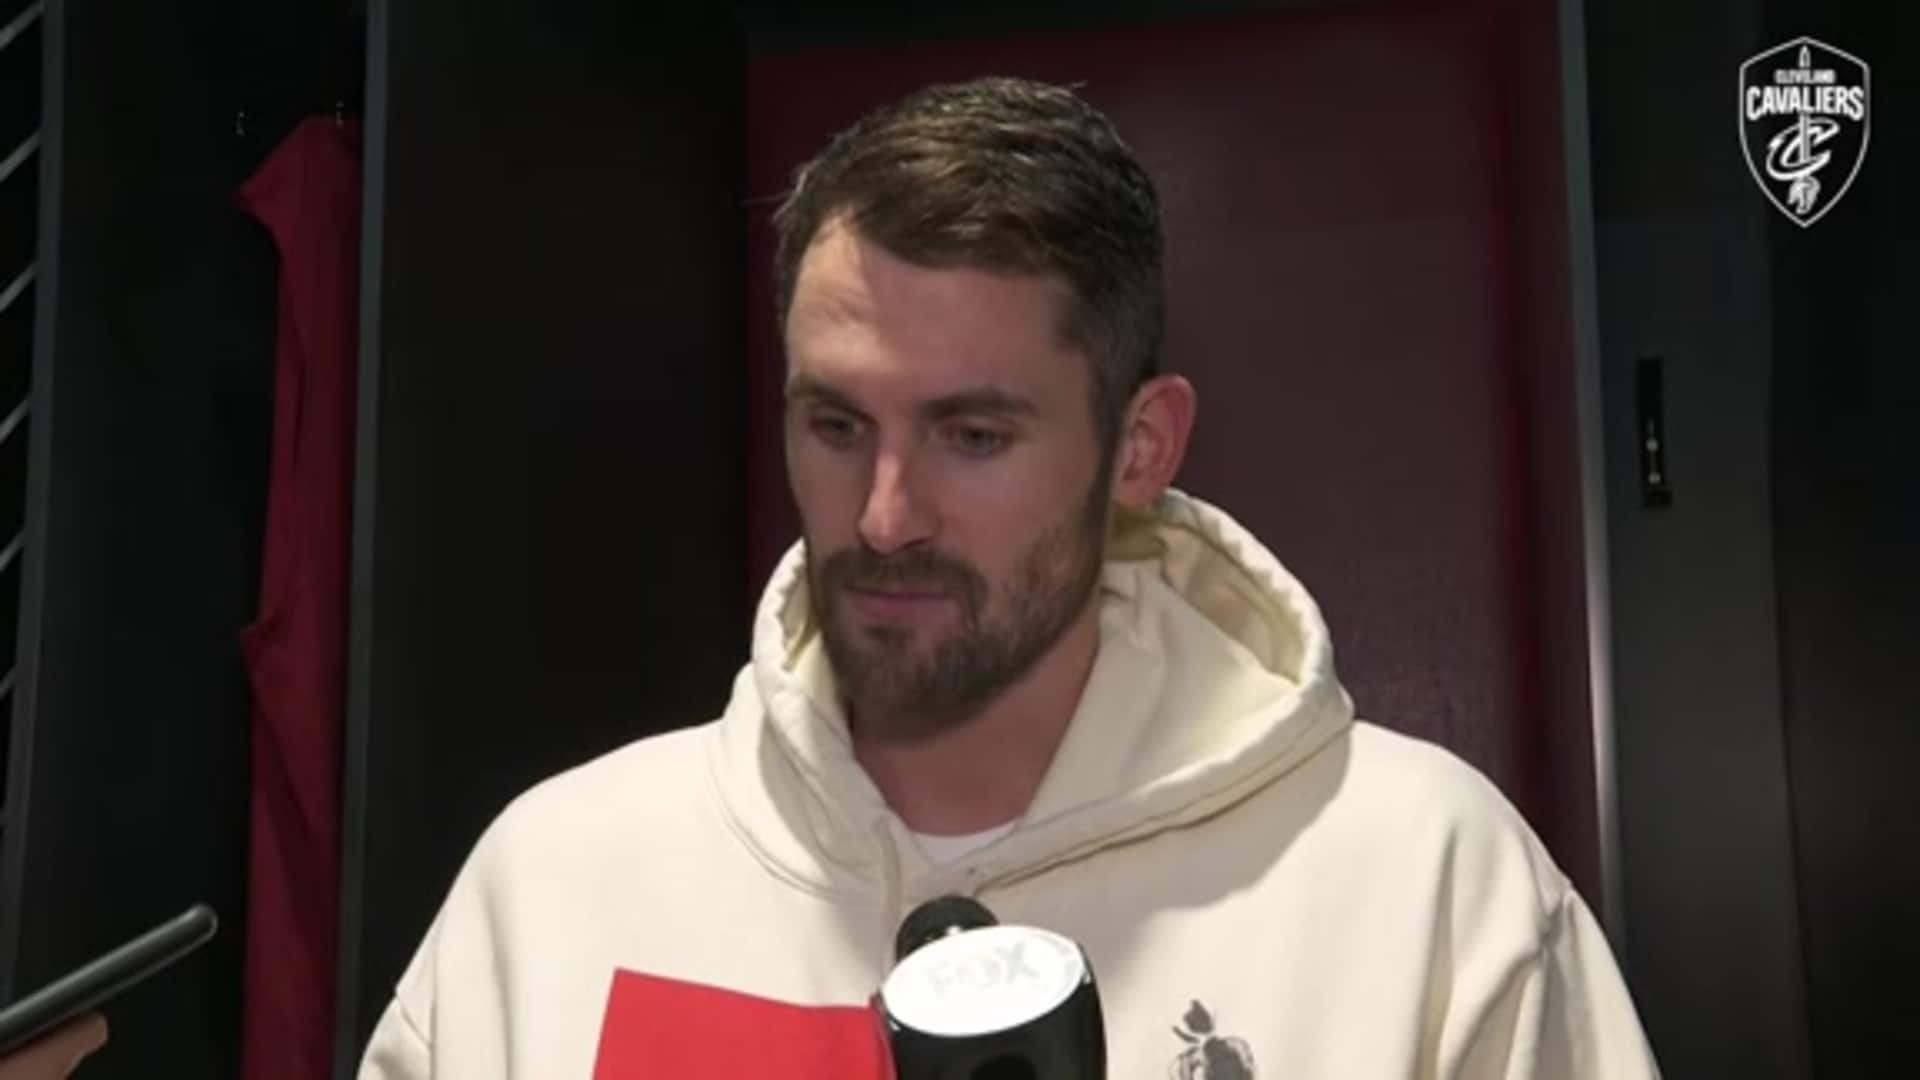 Cavs vs. Knicks Postgame: Kevin Love